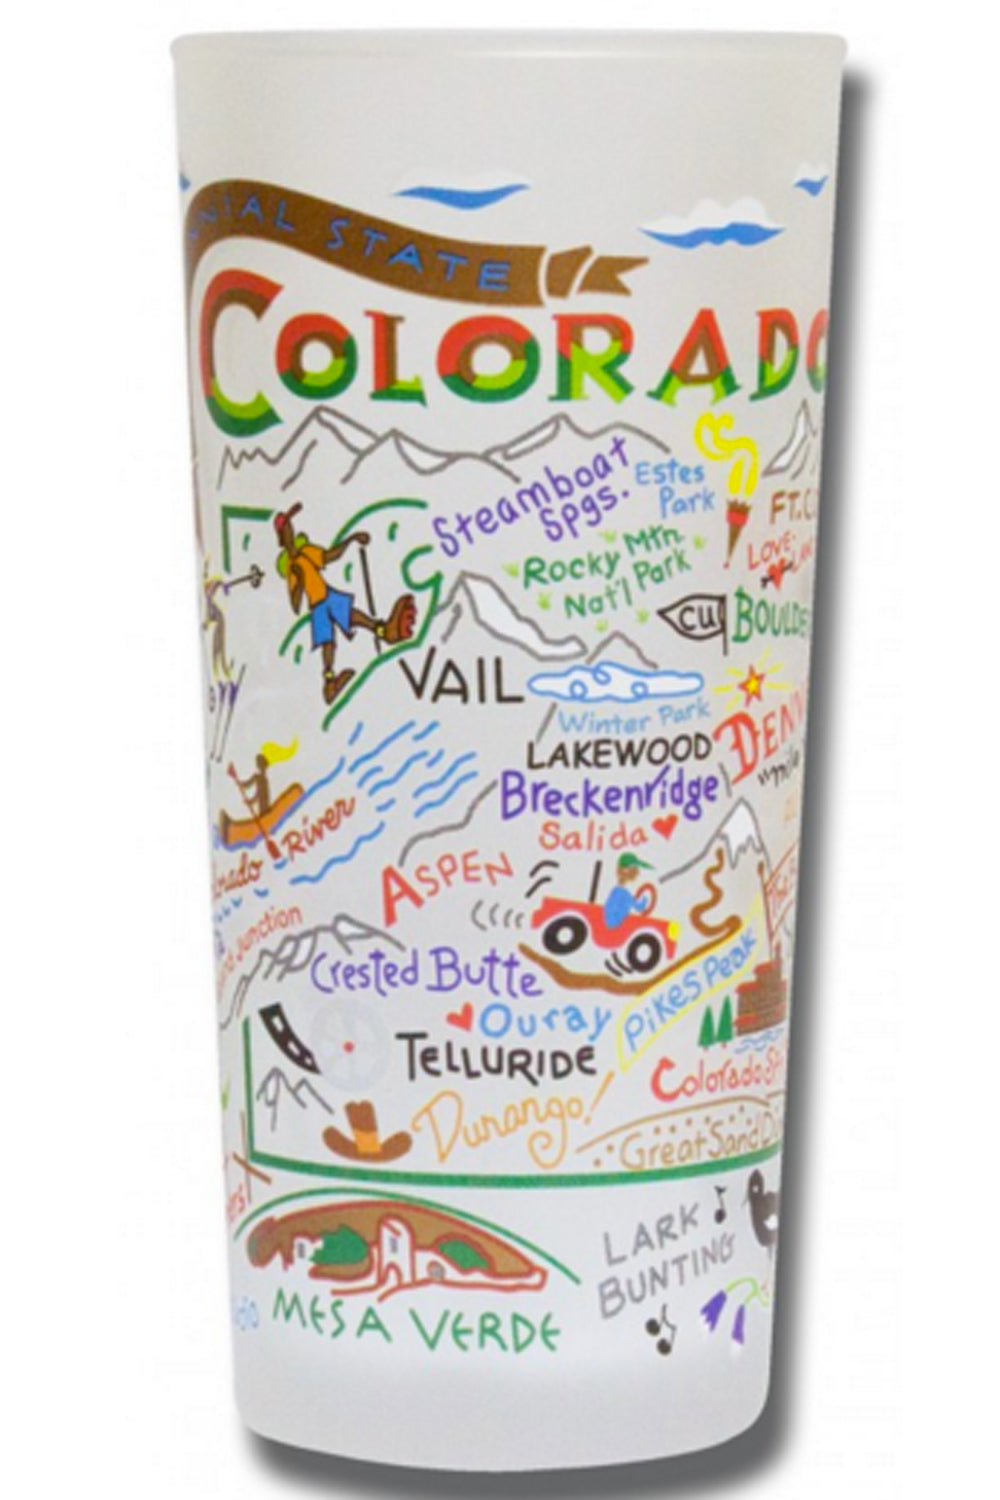 CS Frosted Glass Tumbler Cup - Colorado